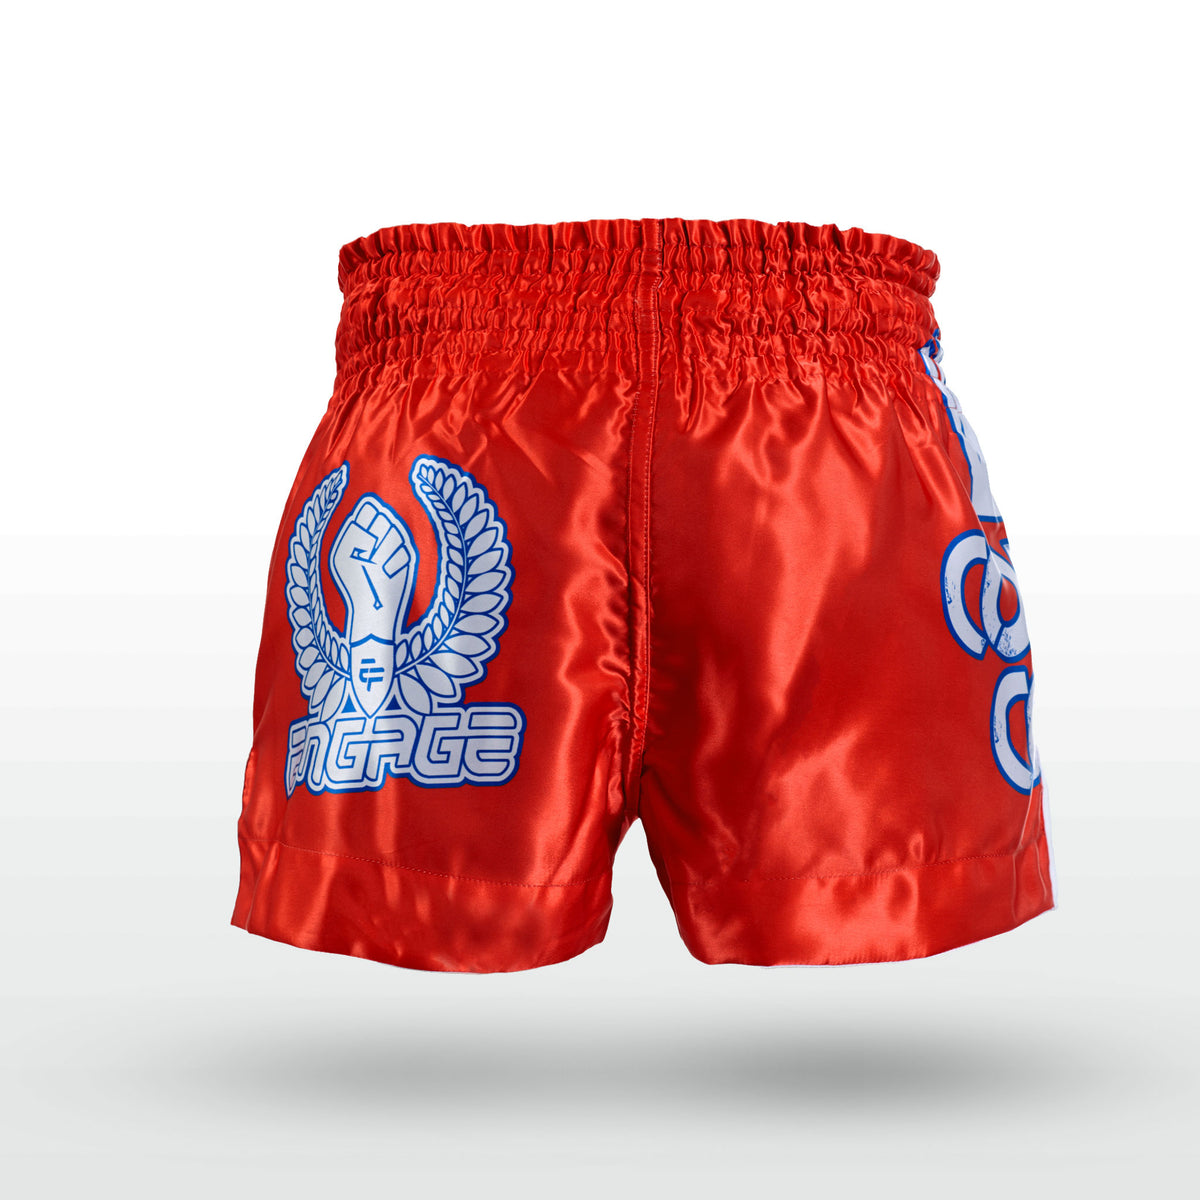 Engage Muay Thai Short Combat Coterie - Red Muay Thai Shorts Engage MMA Online Fight Store for Apparel, Fightwear and Fight Gear Equipment